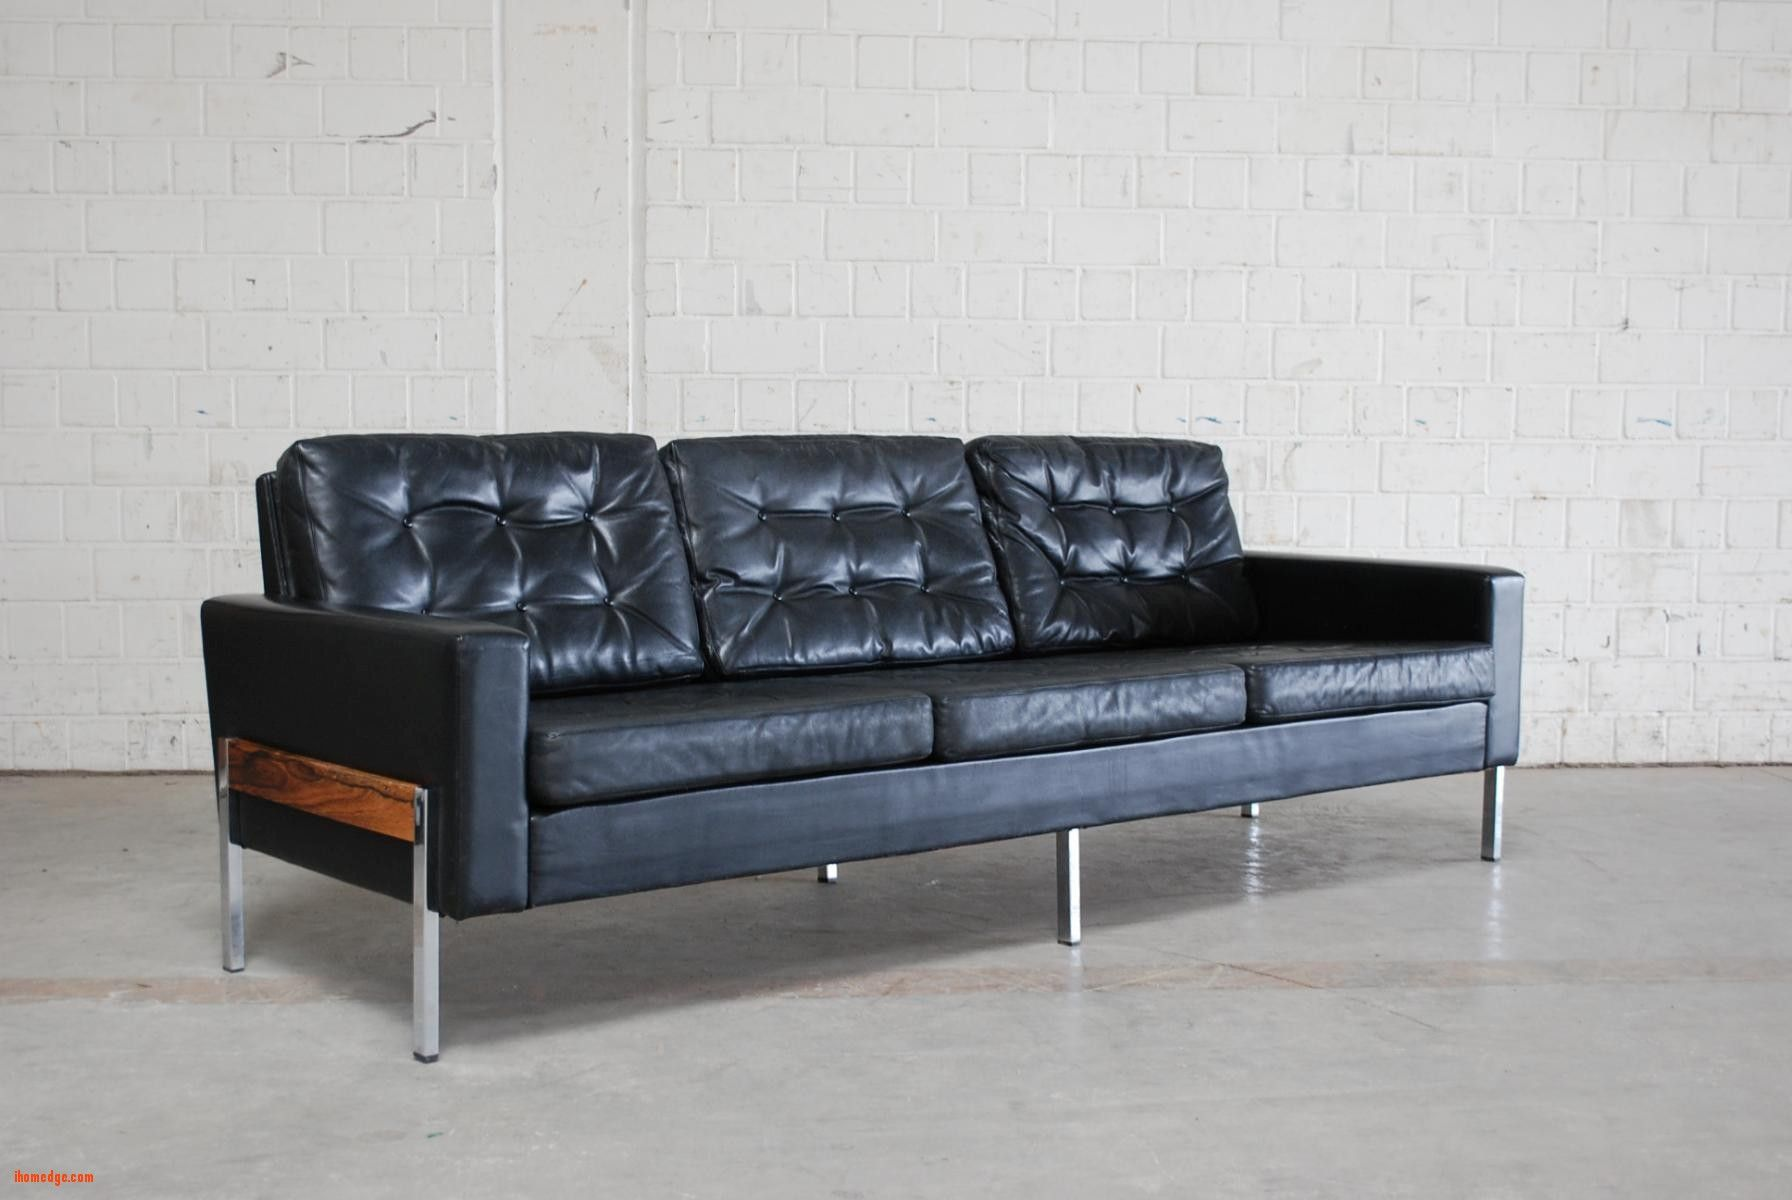 On Pin CouchBlack Ihomedge Bed By Sofaamp; Leather g7vYf6by